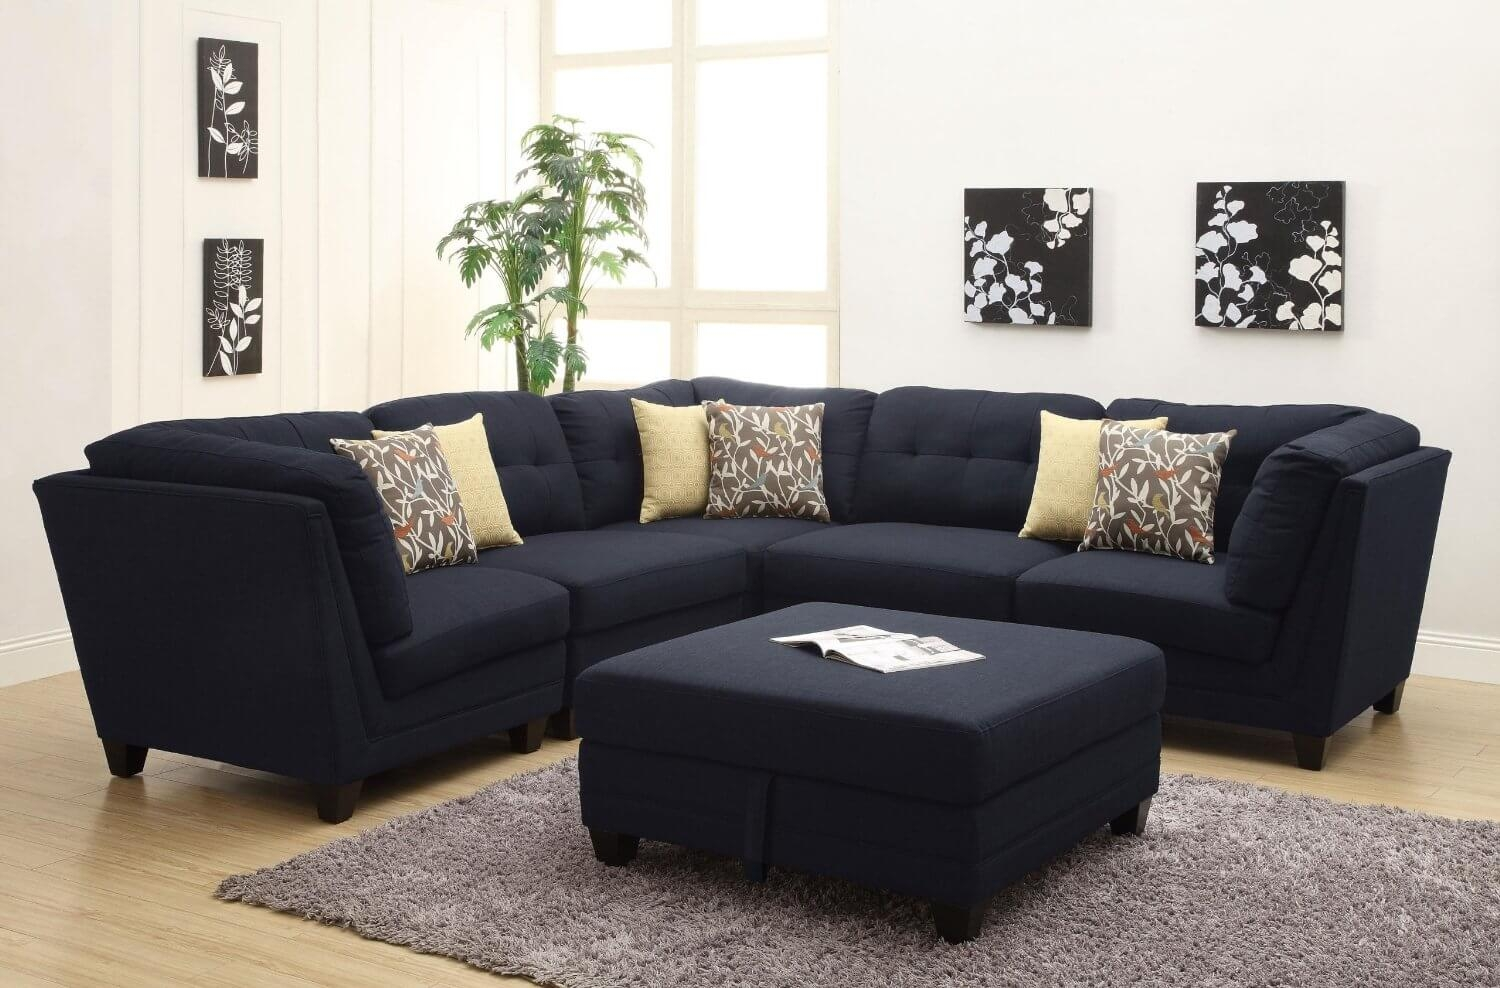 Astounding Multi Piece Sectional Sofa 57 About Remodel Good For Quality Sectional Sofa (#3 of 12)